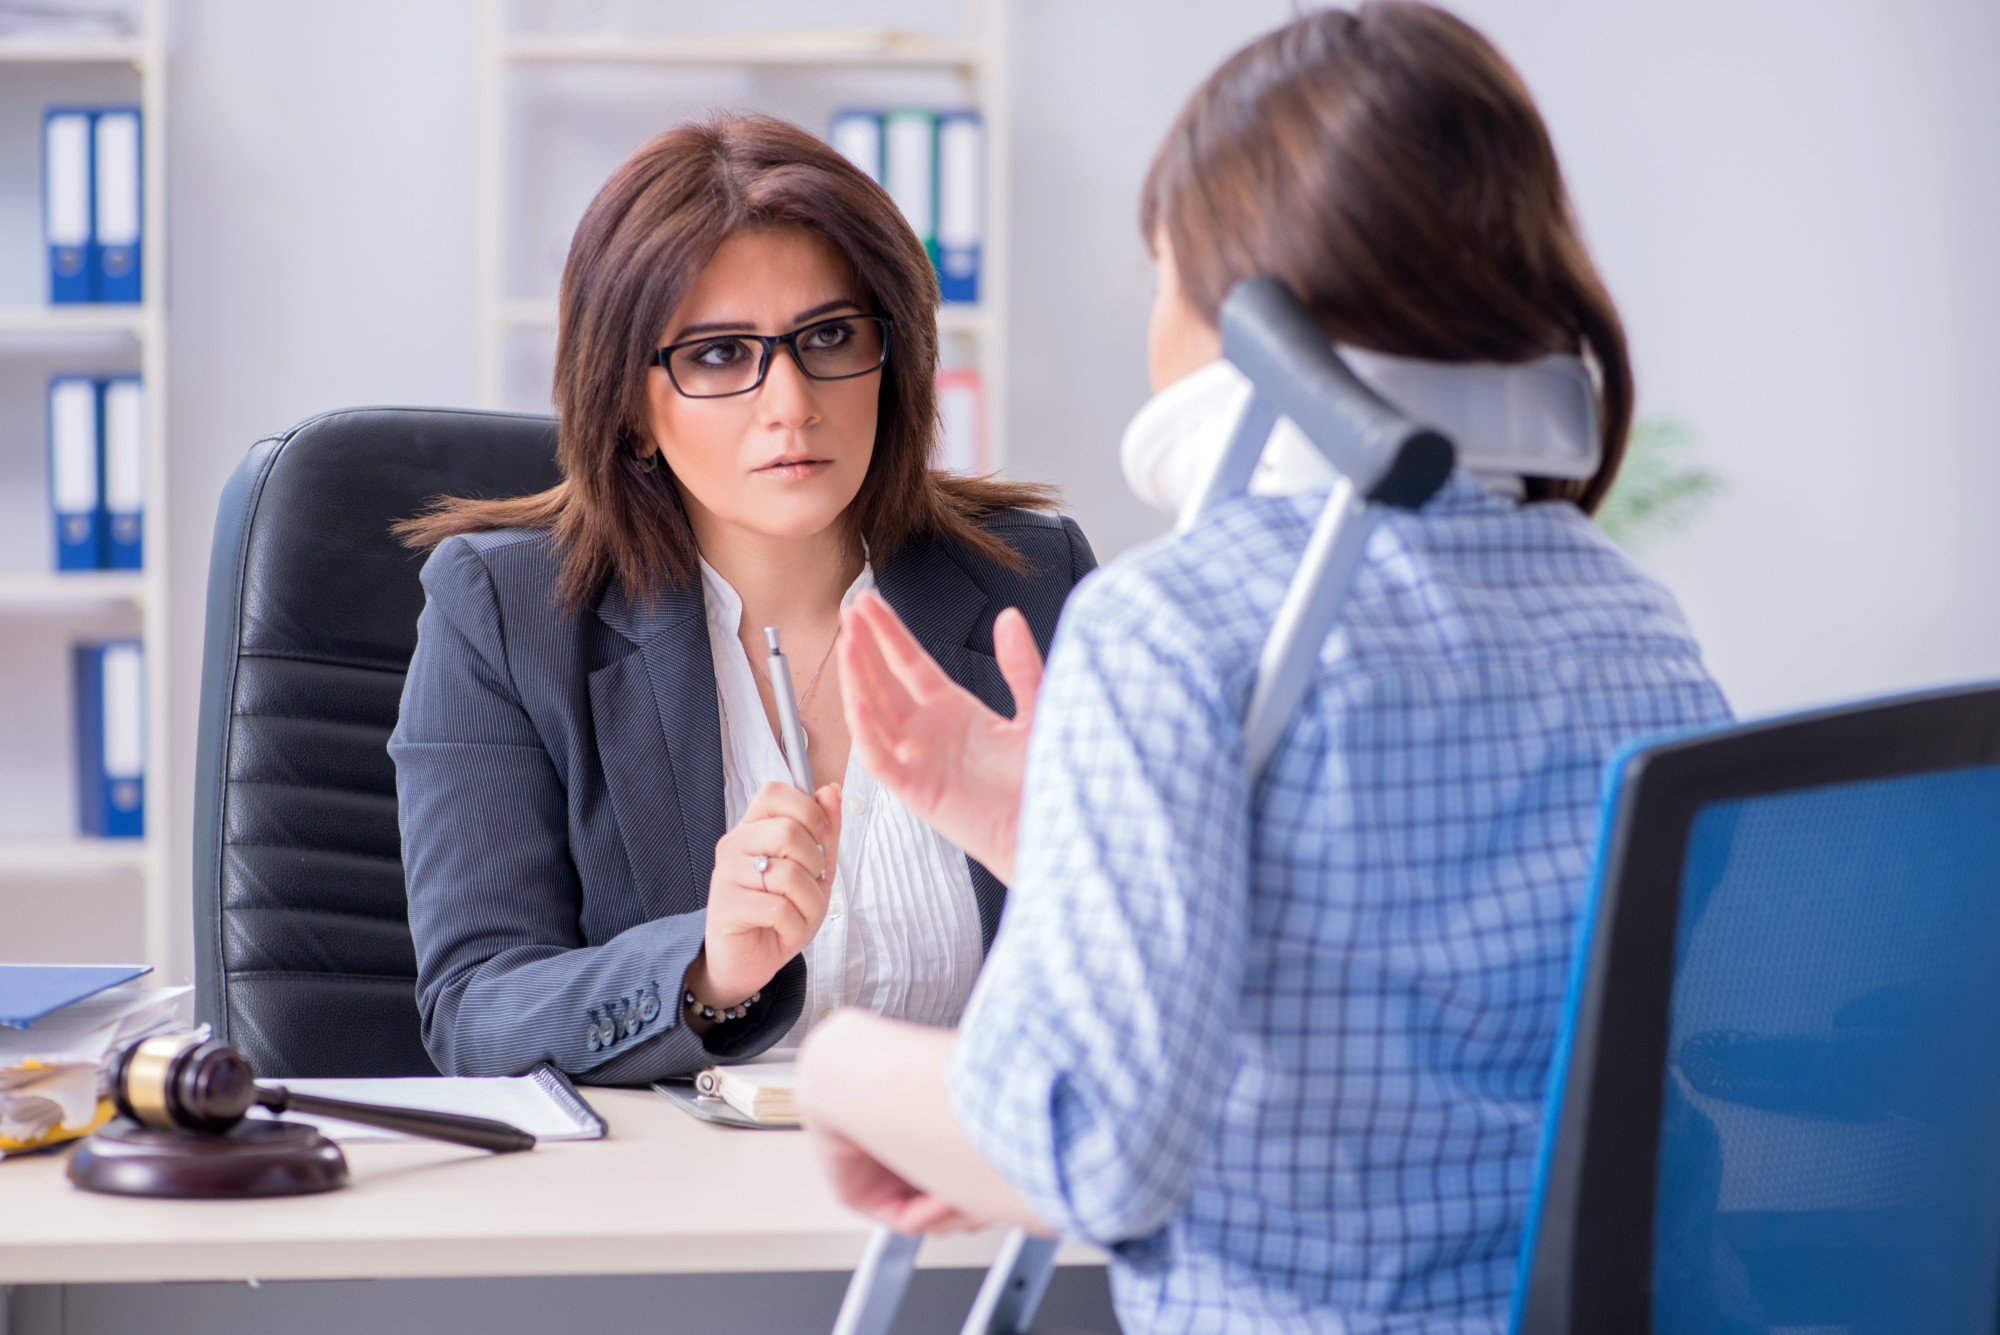 Getting Legal Help: 4 Must-Know Tips for Hiring a Personal Injury Lawyer